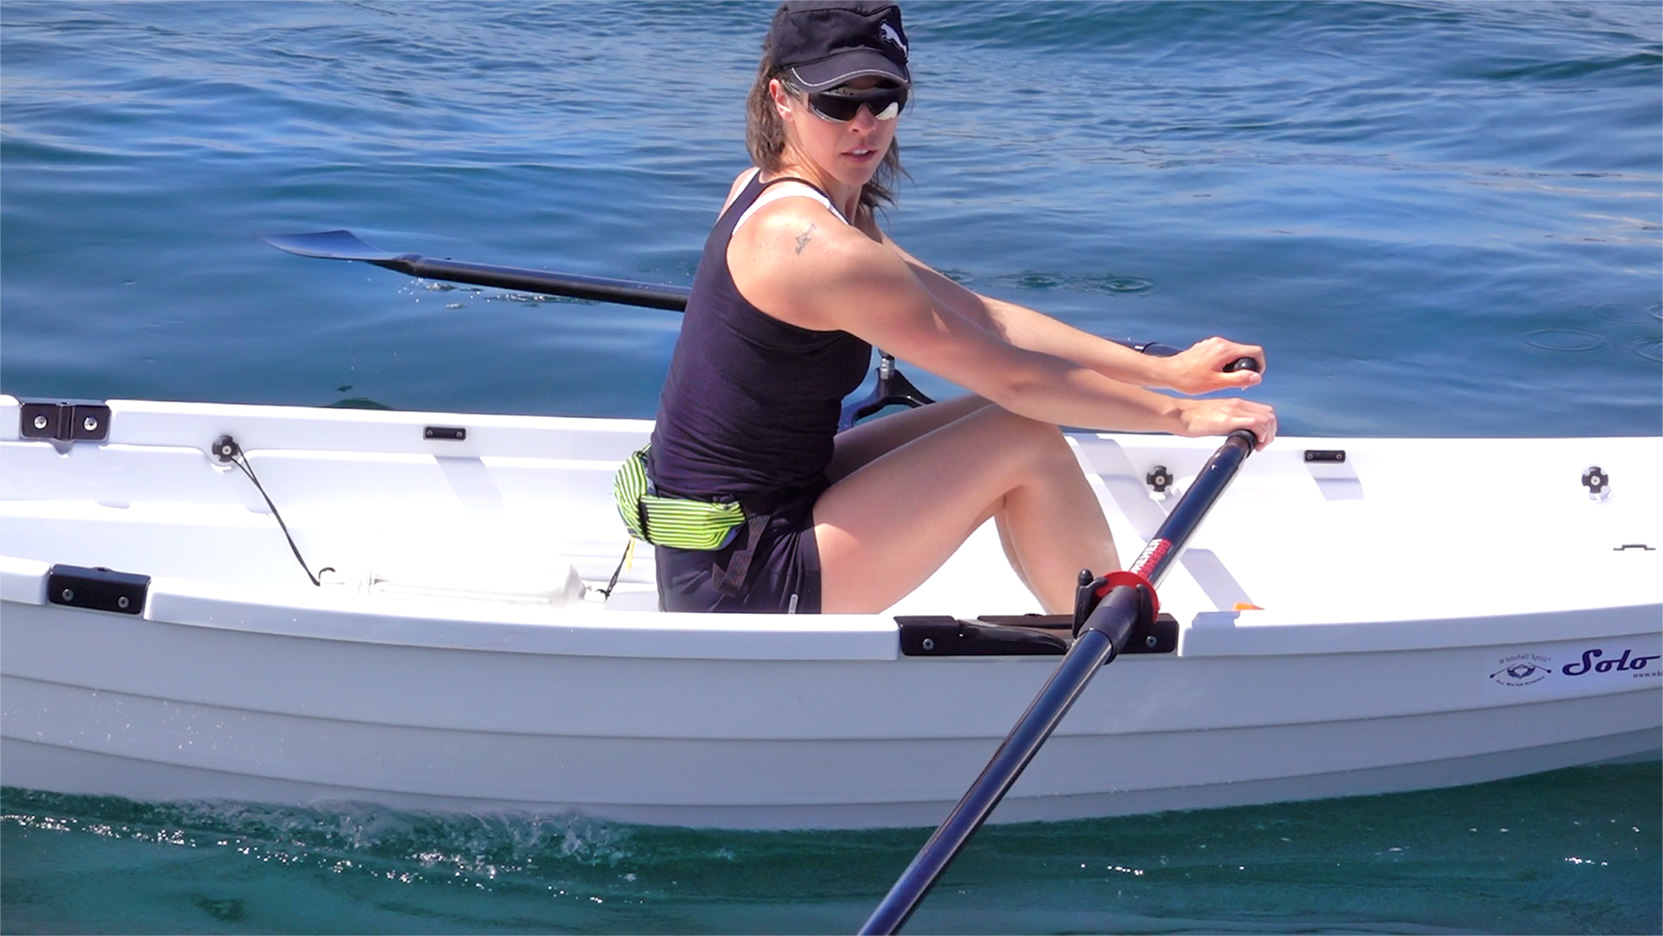 What-to-wear-Whitehall-Rowing-and-Sail-Solo-14-boat